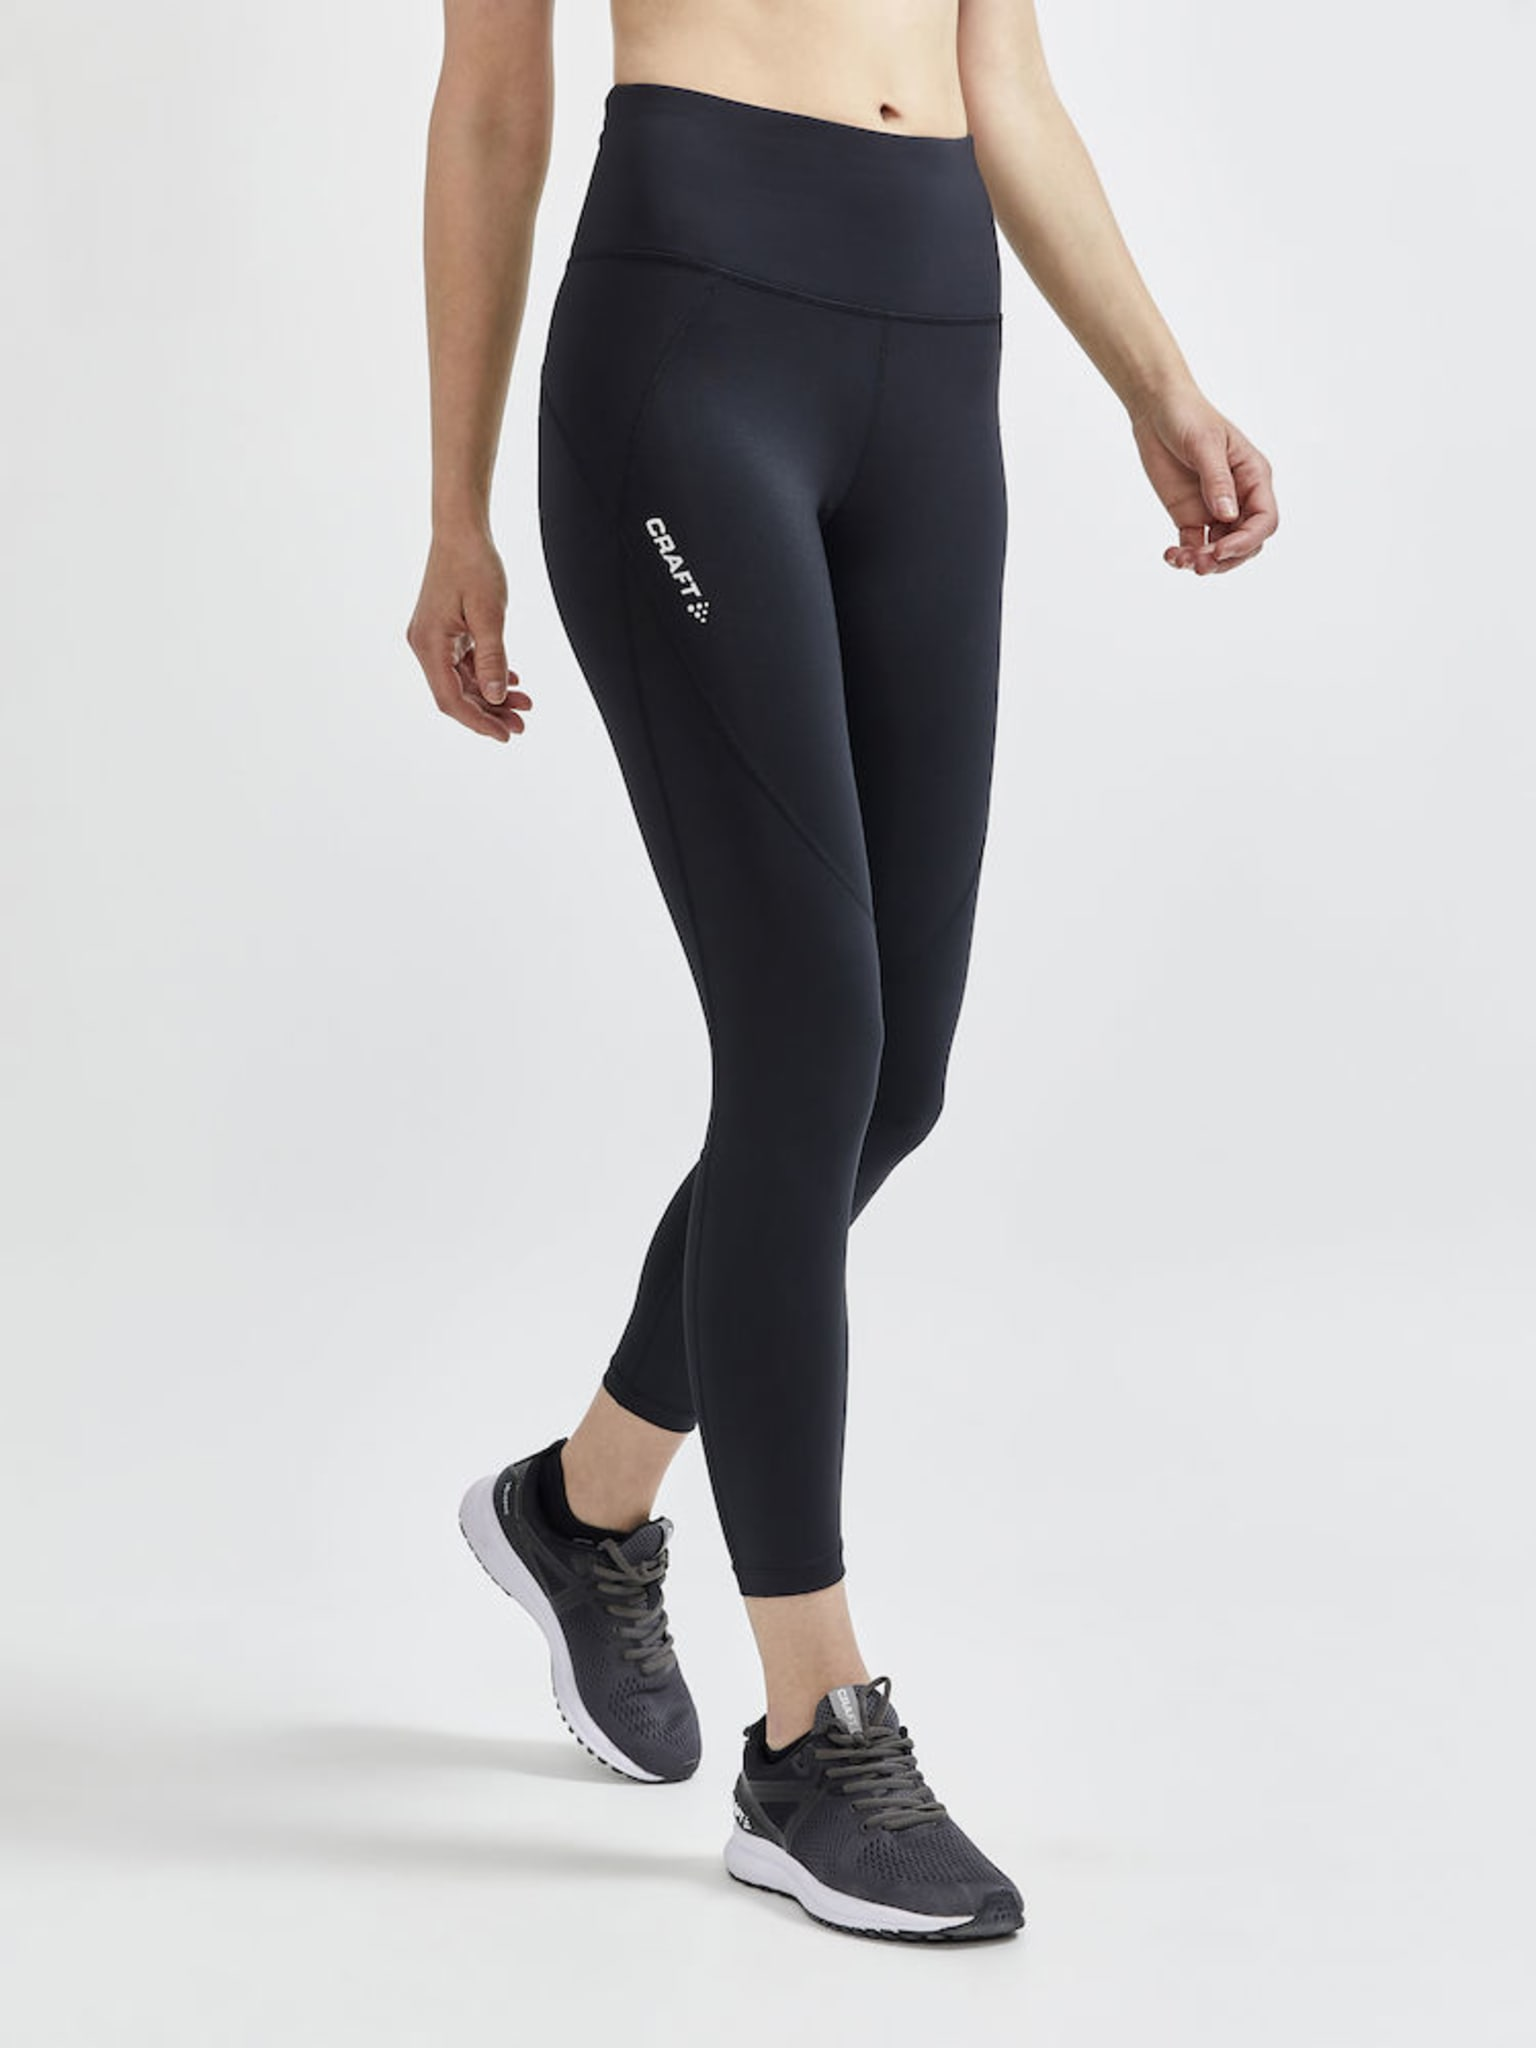 Avansert tights for høyintensiv trening.